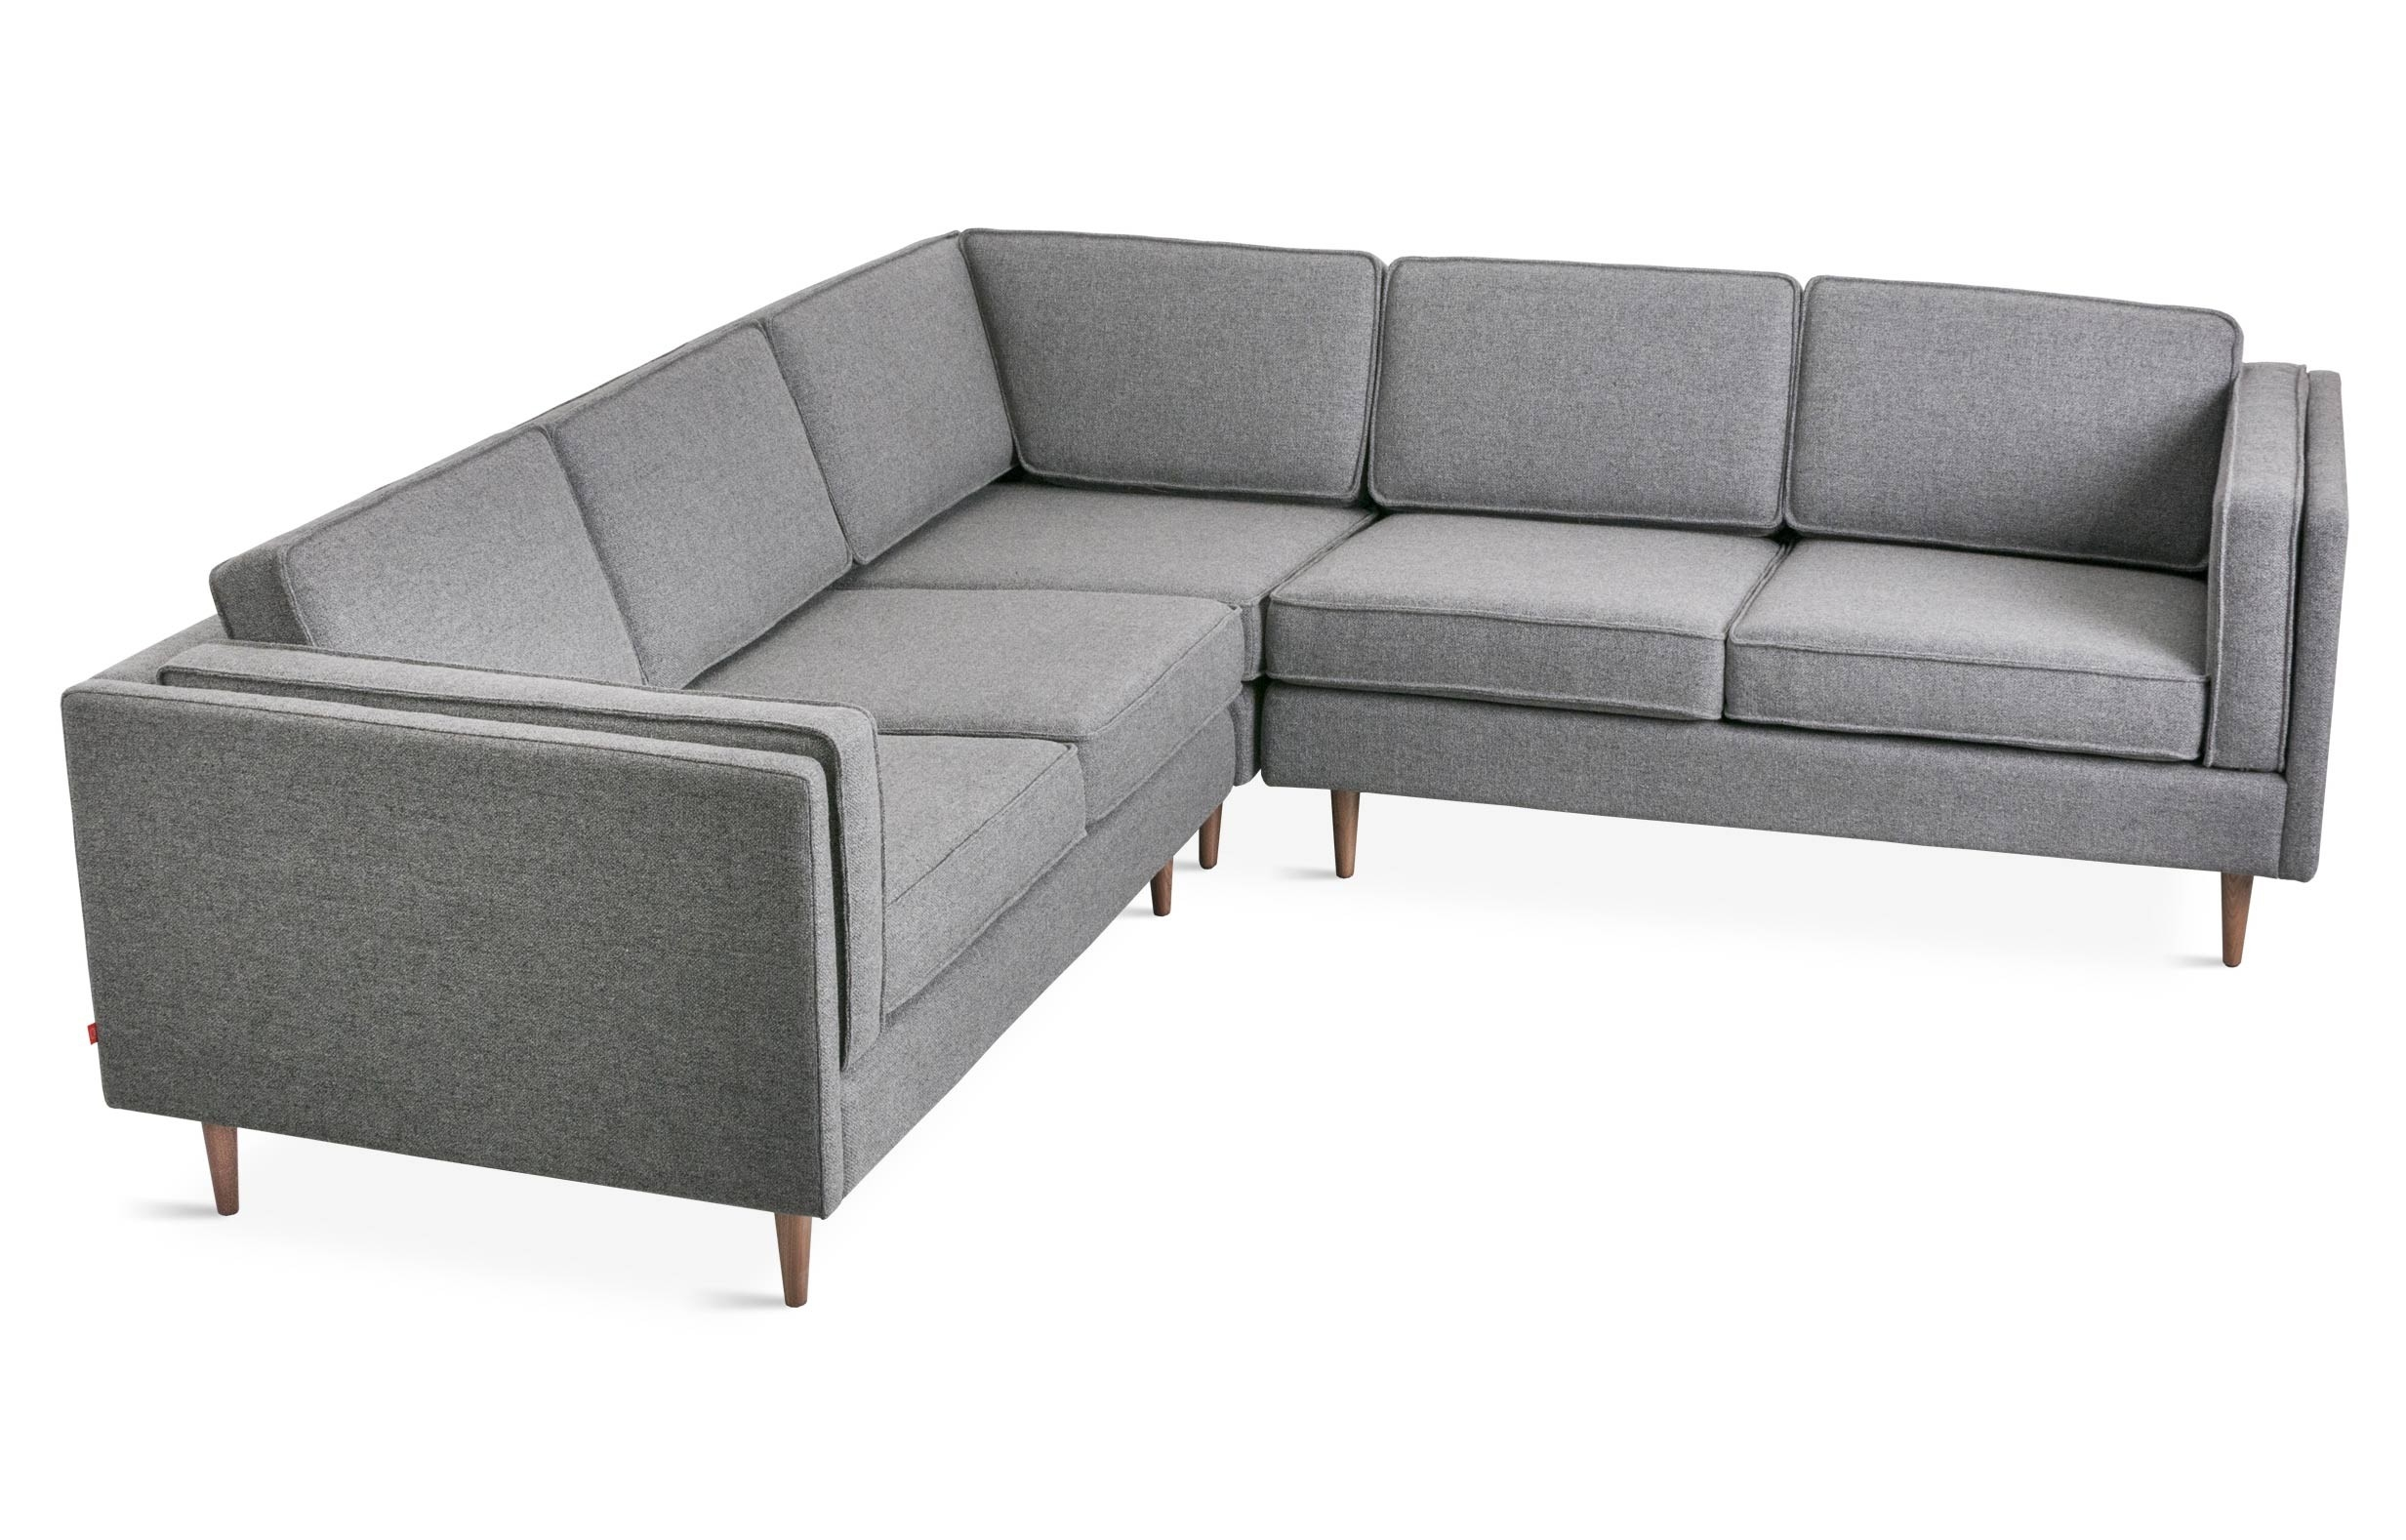 Adelaide Bi Sectional Viesso Throughout Bisectional Sofa (Image 2 of 15)